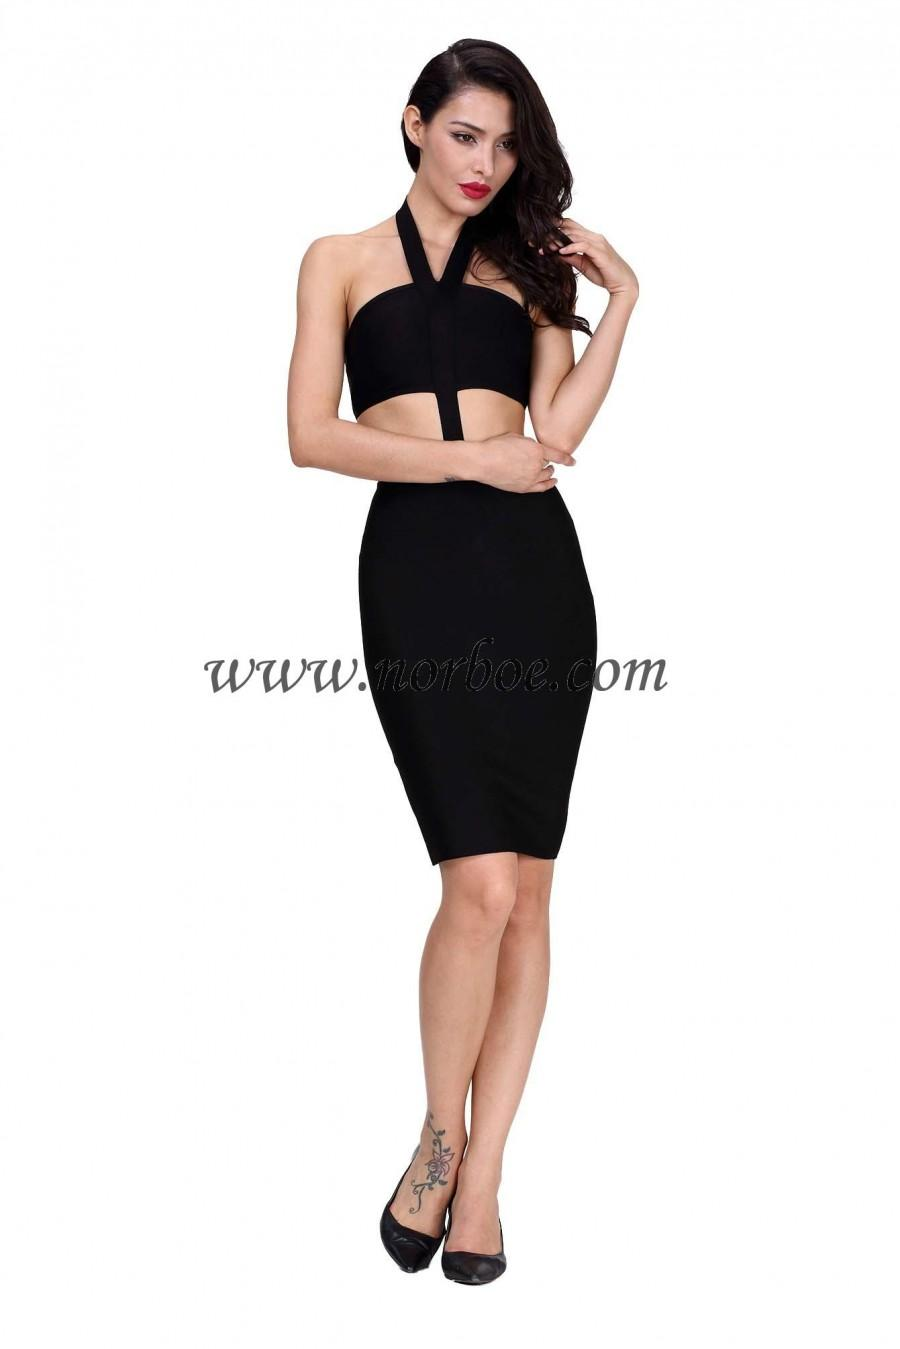 Wedding - Norboe Black One Piece Halter Bandage Dress